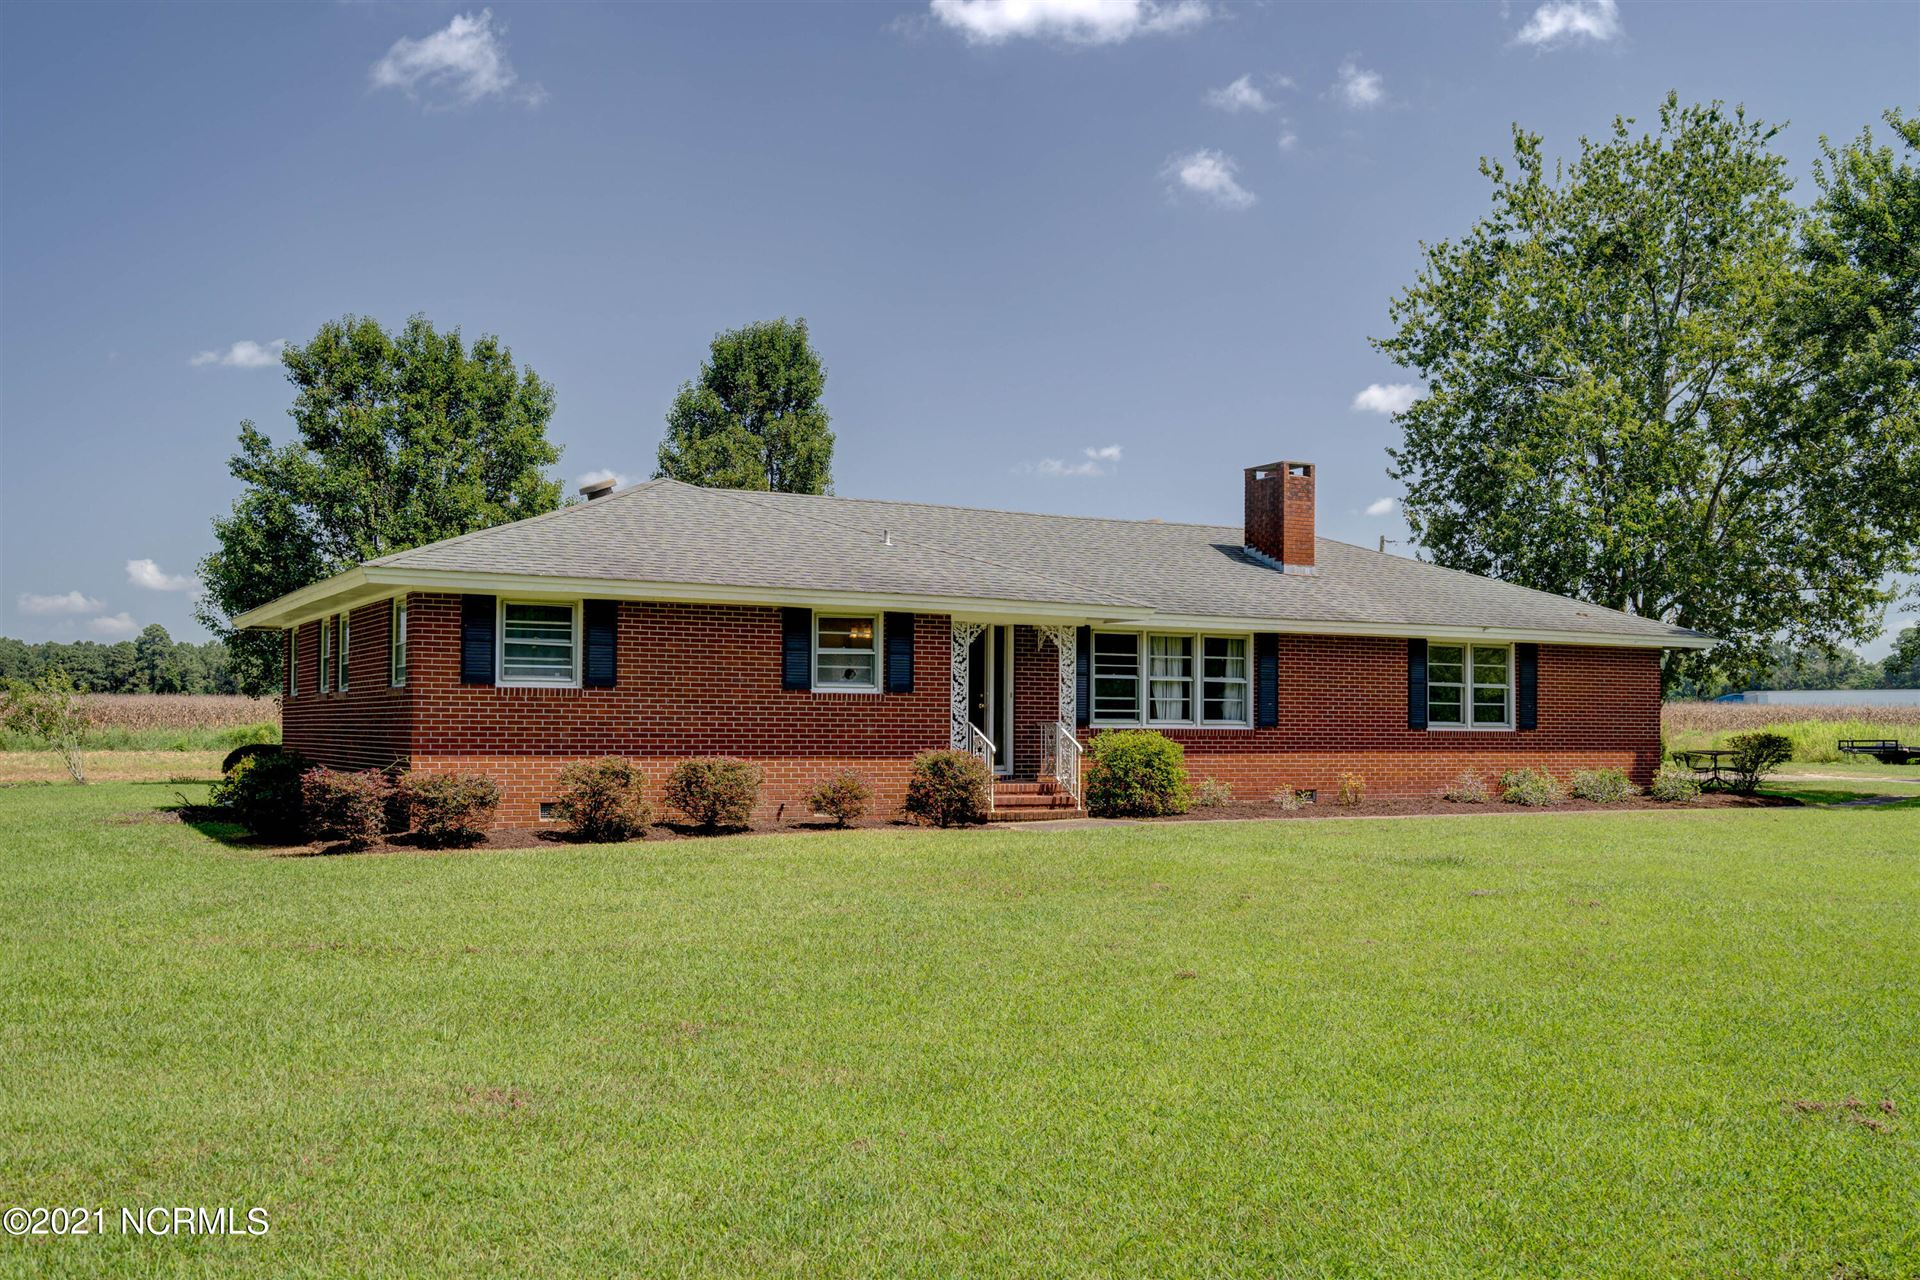 Photo of 18660 Nc-210, Rocky Point, NC 28457 (MLS # 100288709)